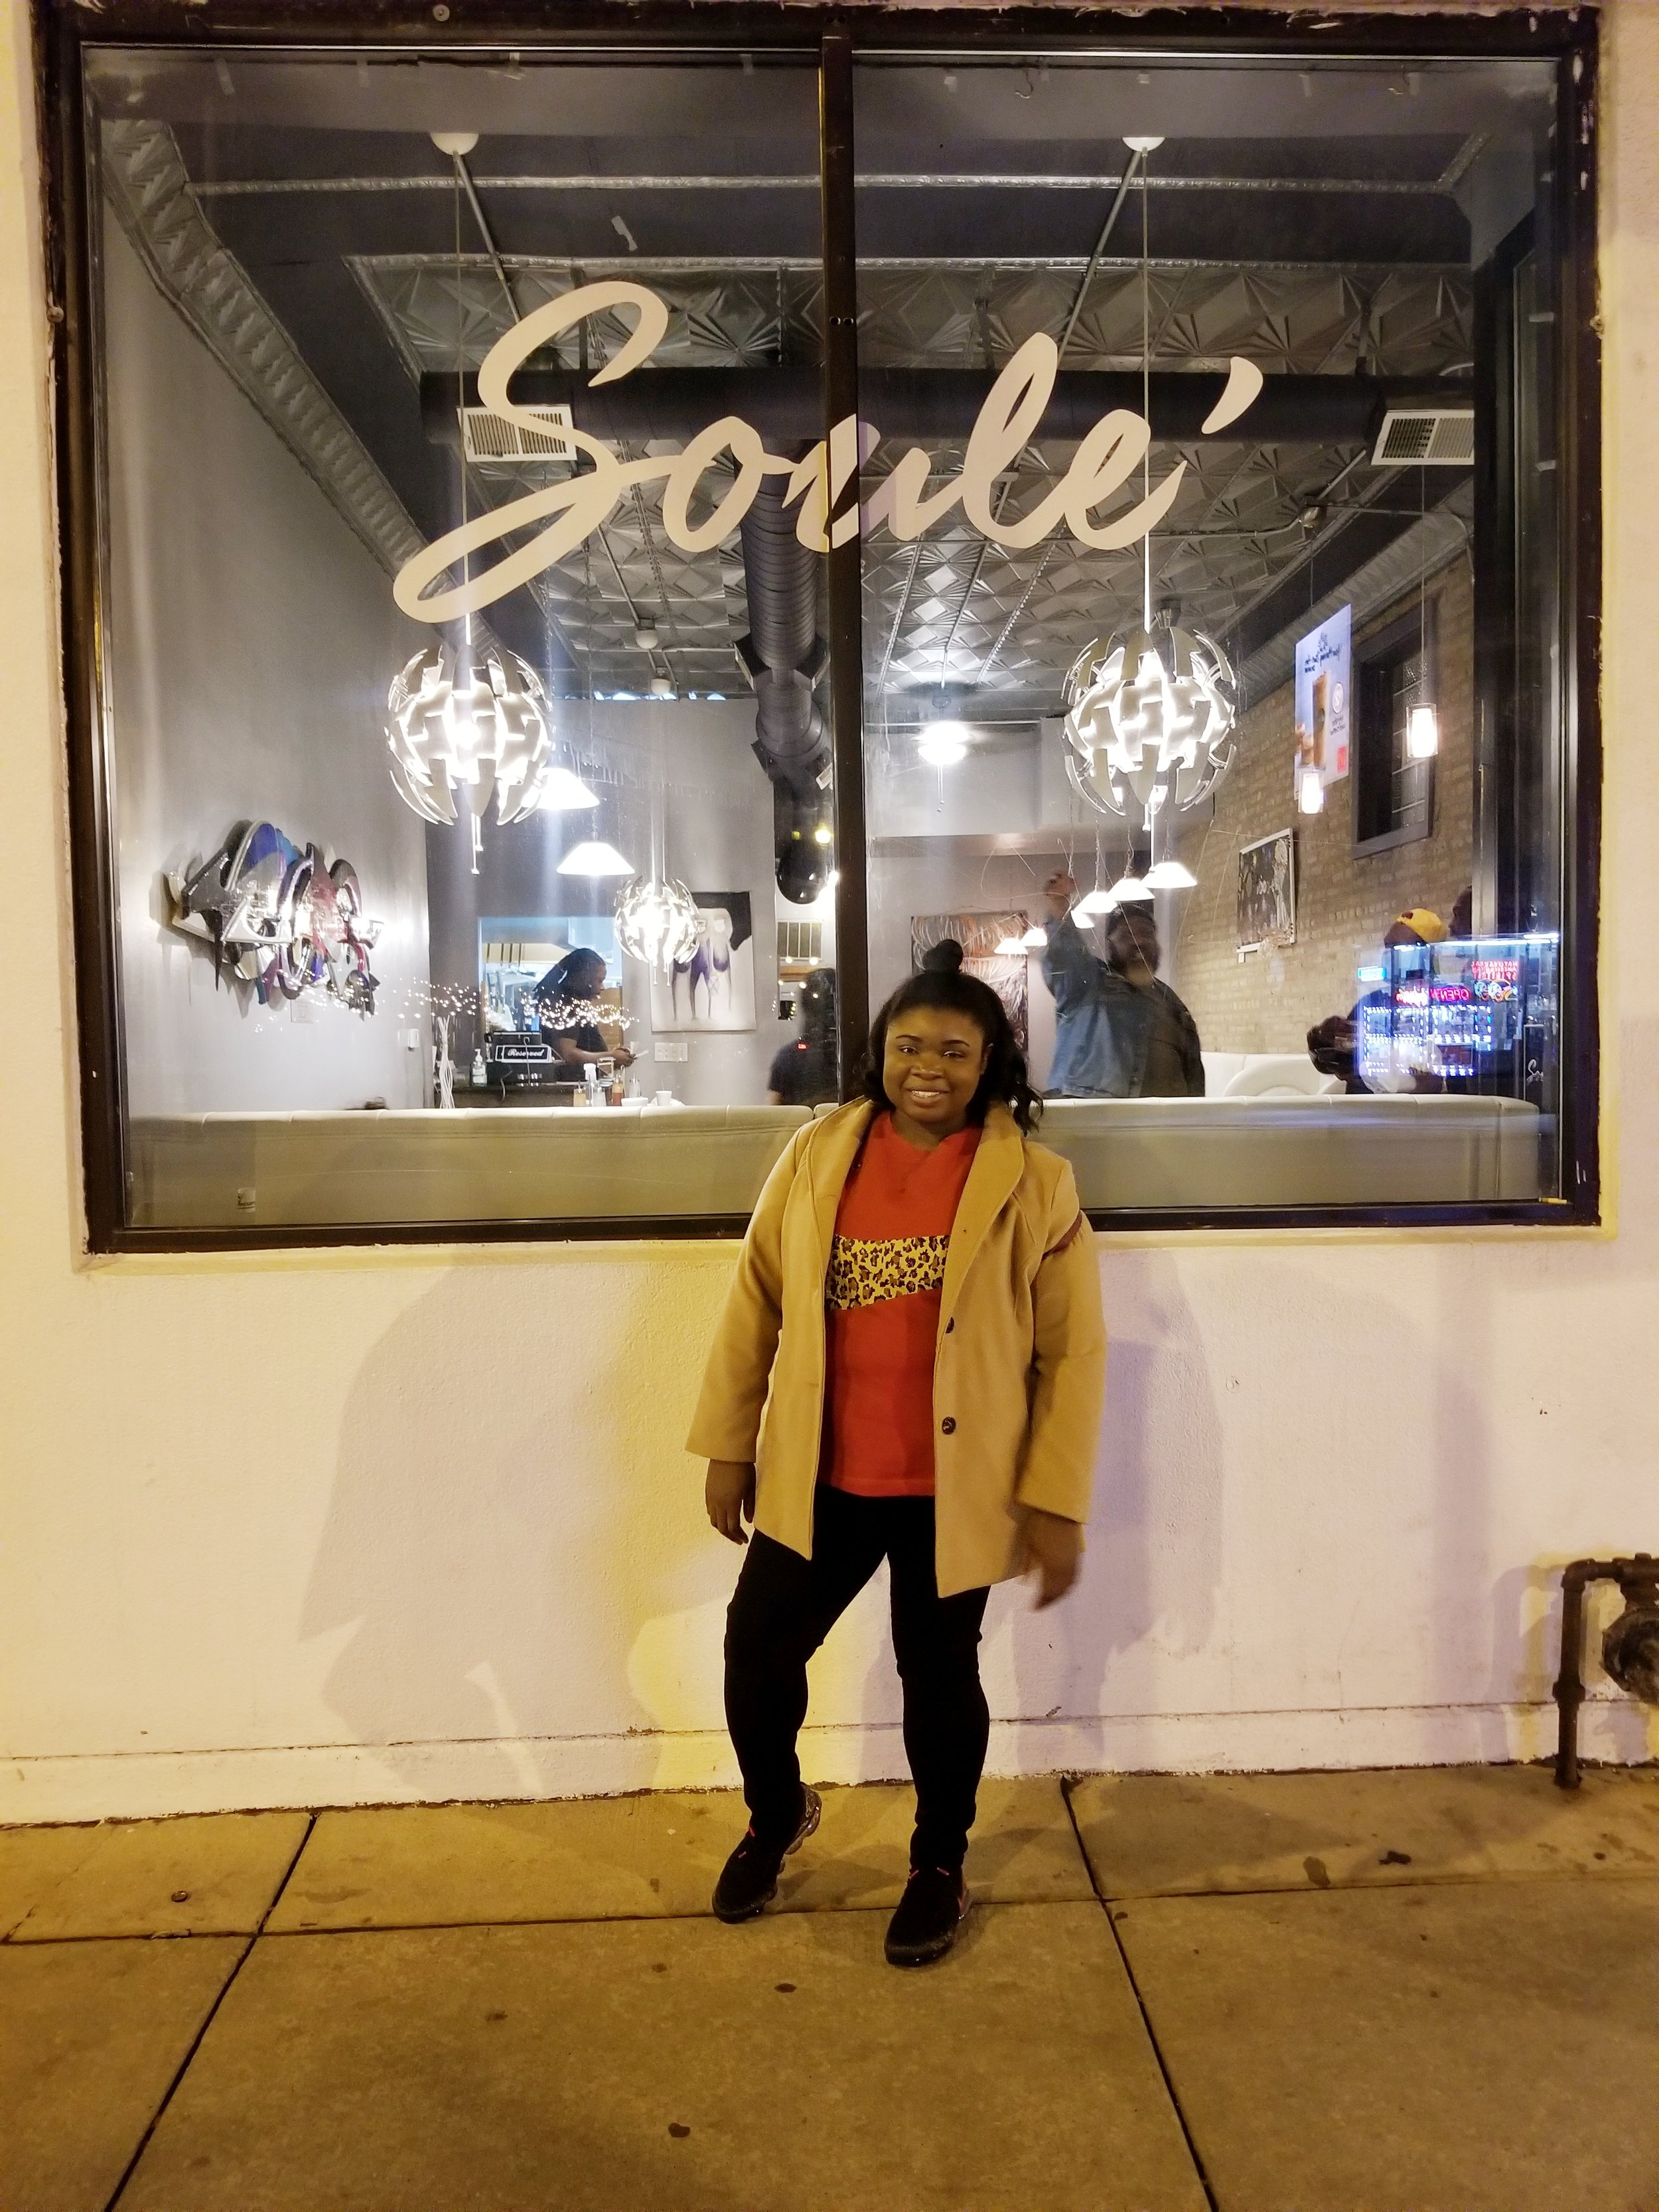 Day 1:  I made sure my first stop of the night was at Soule Chicago.  It was hands down the best food I had my entire trip.  I loved the food so much I did an entire post (linked under food reviews)